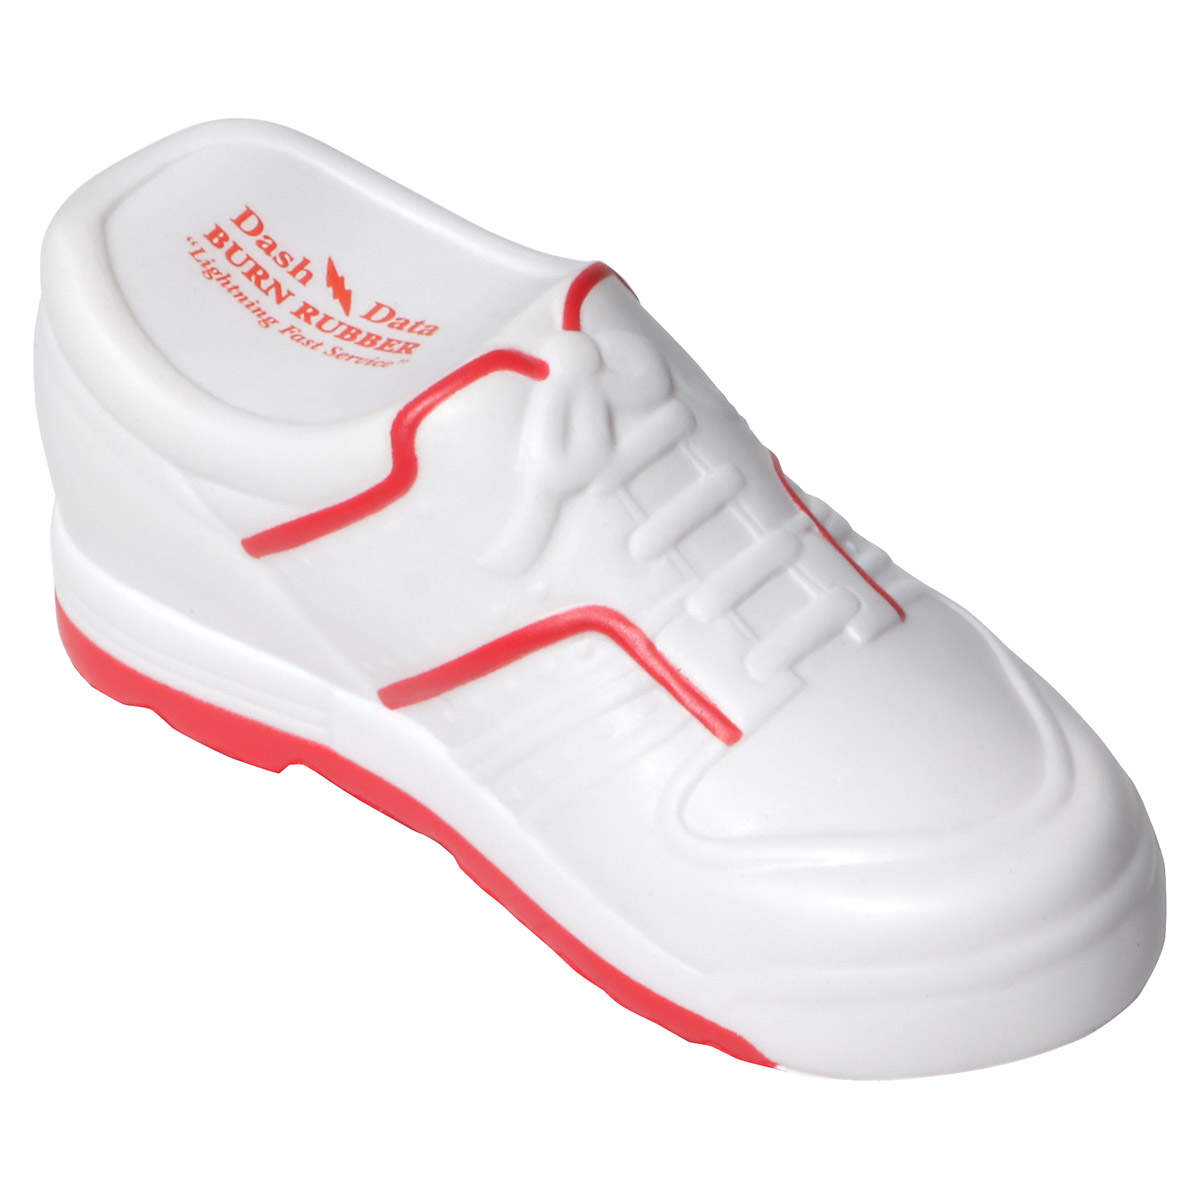 Tennis Shoe Squeeze Reliever, LSP-TS16 - 1 Colour Imprint